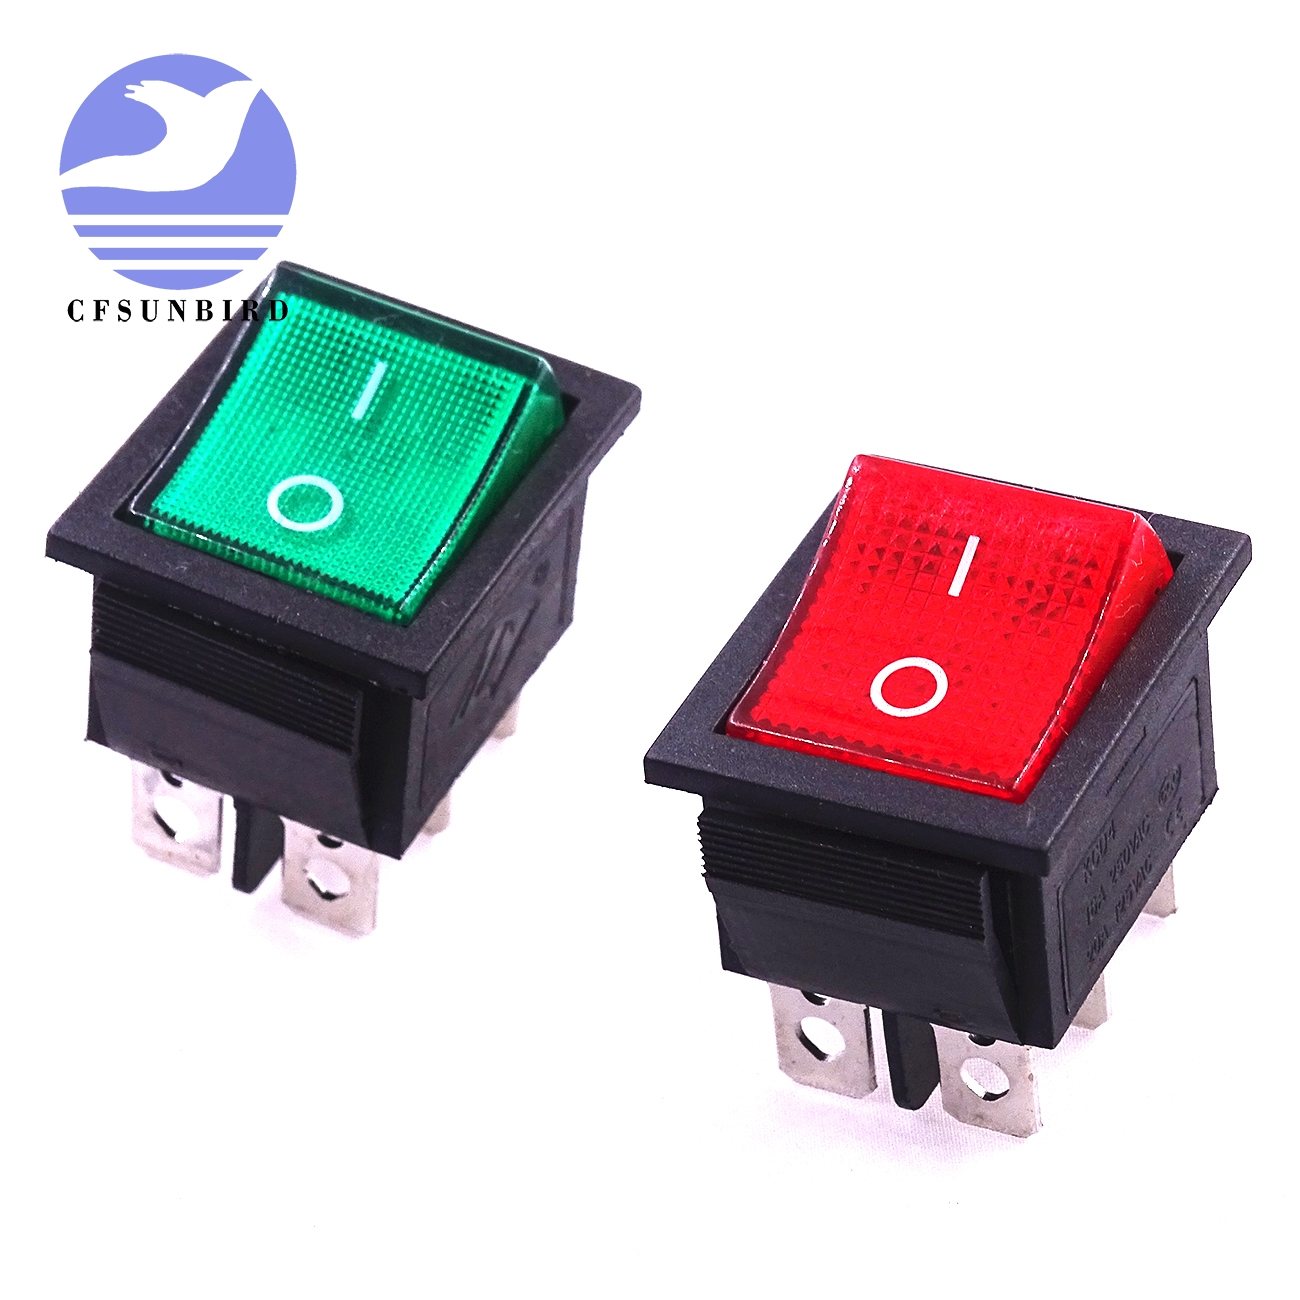 Electronics Stocks Ambitious 10pcs/lot Boat Form 6 Feet With Lamp Switch Kcd4 Ship Type 16a 250v 31x25mm With Light Green Light